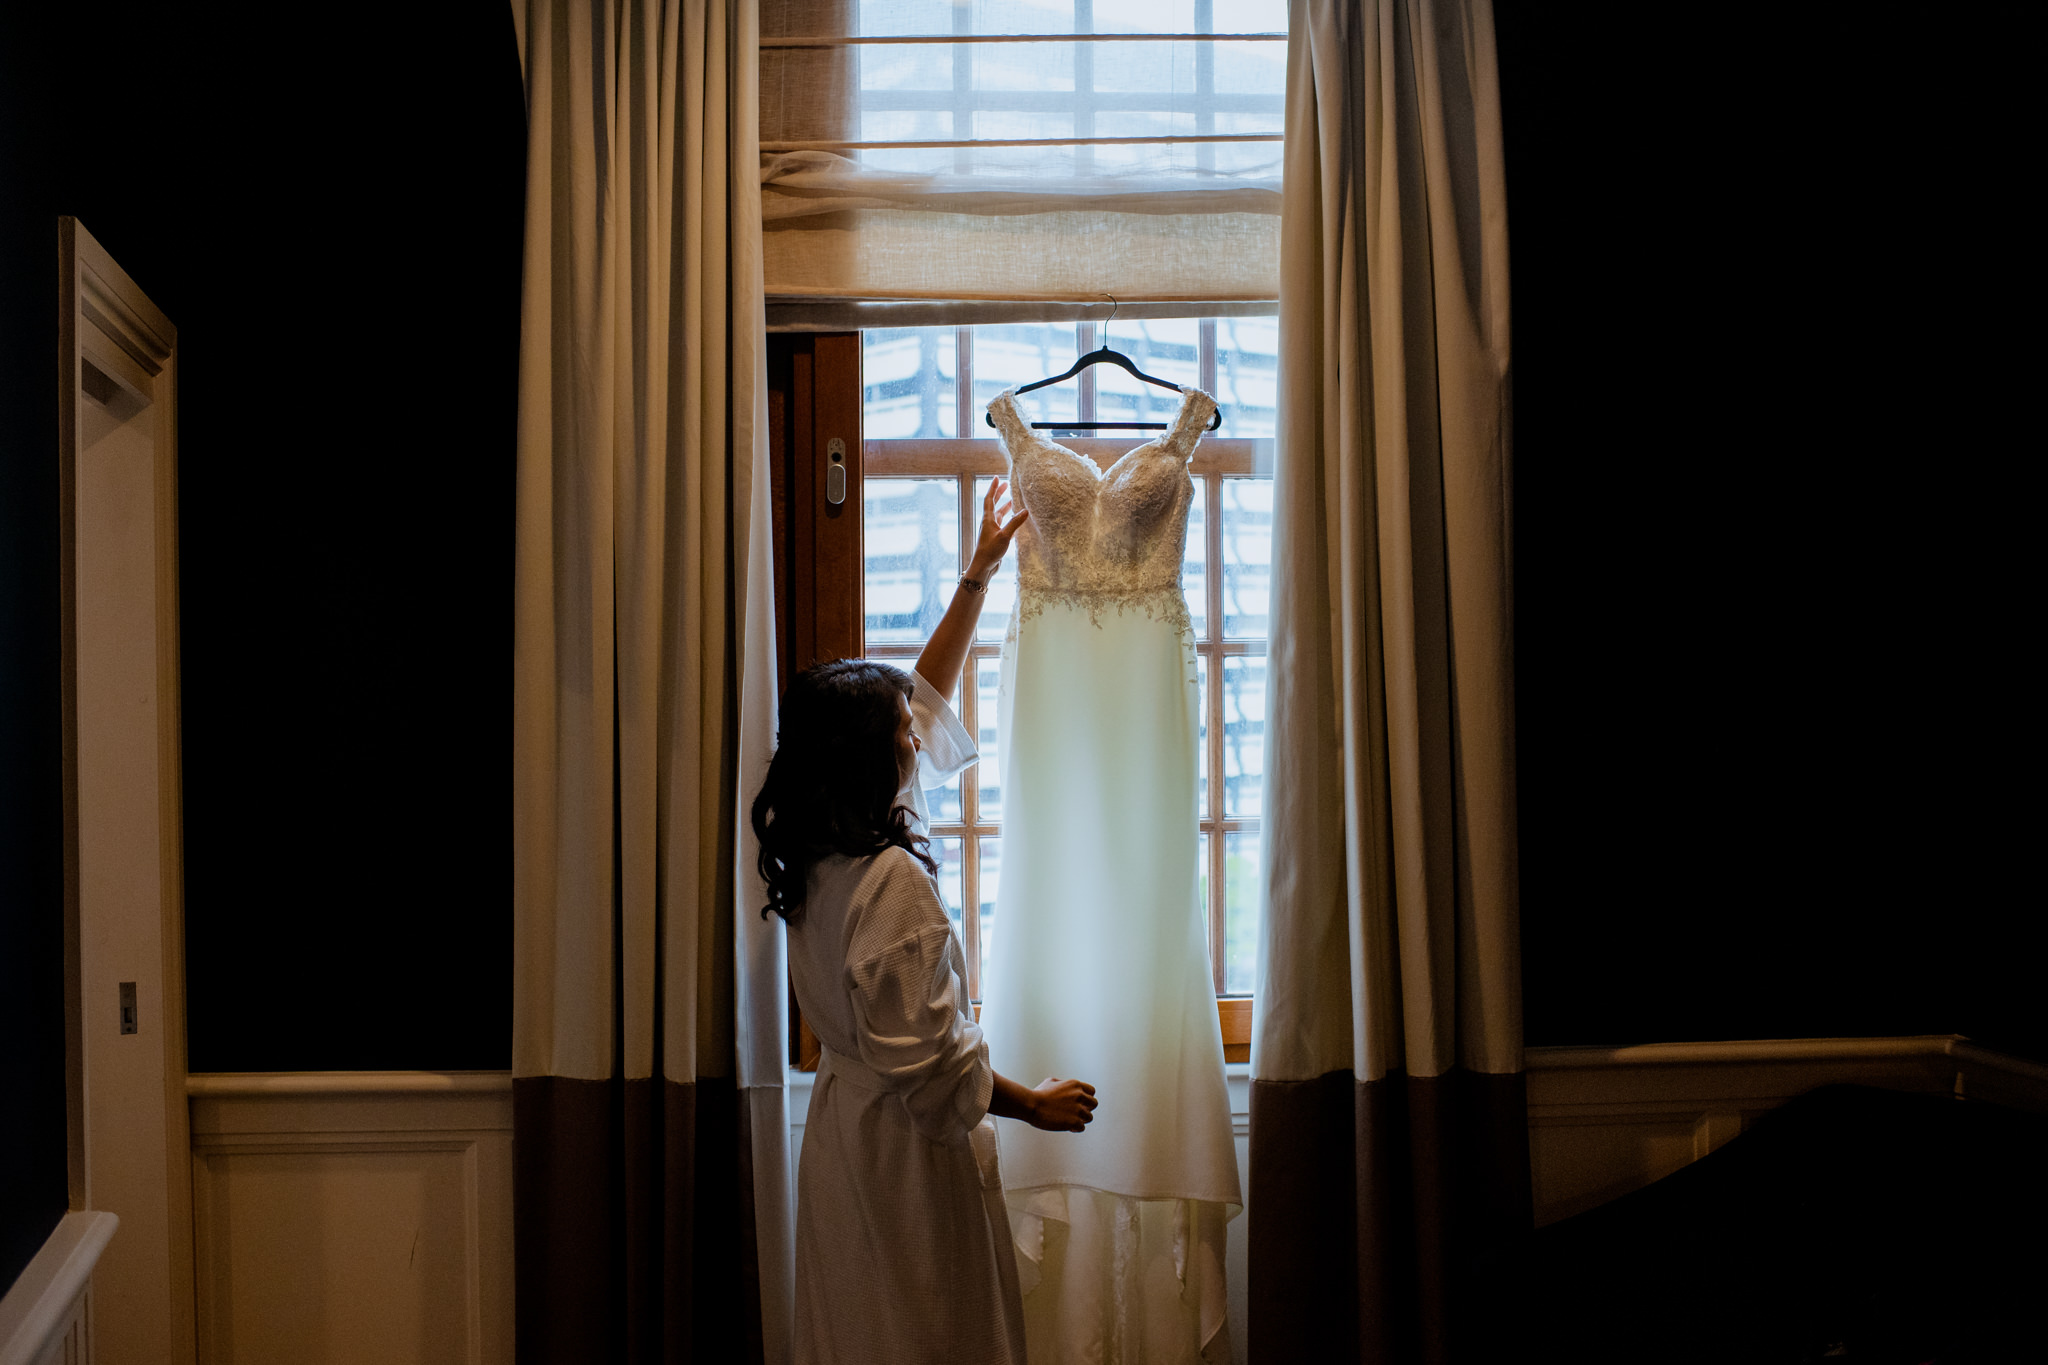 Girl in bathrobe adjusting wedding dress hanging in the windowsill